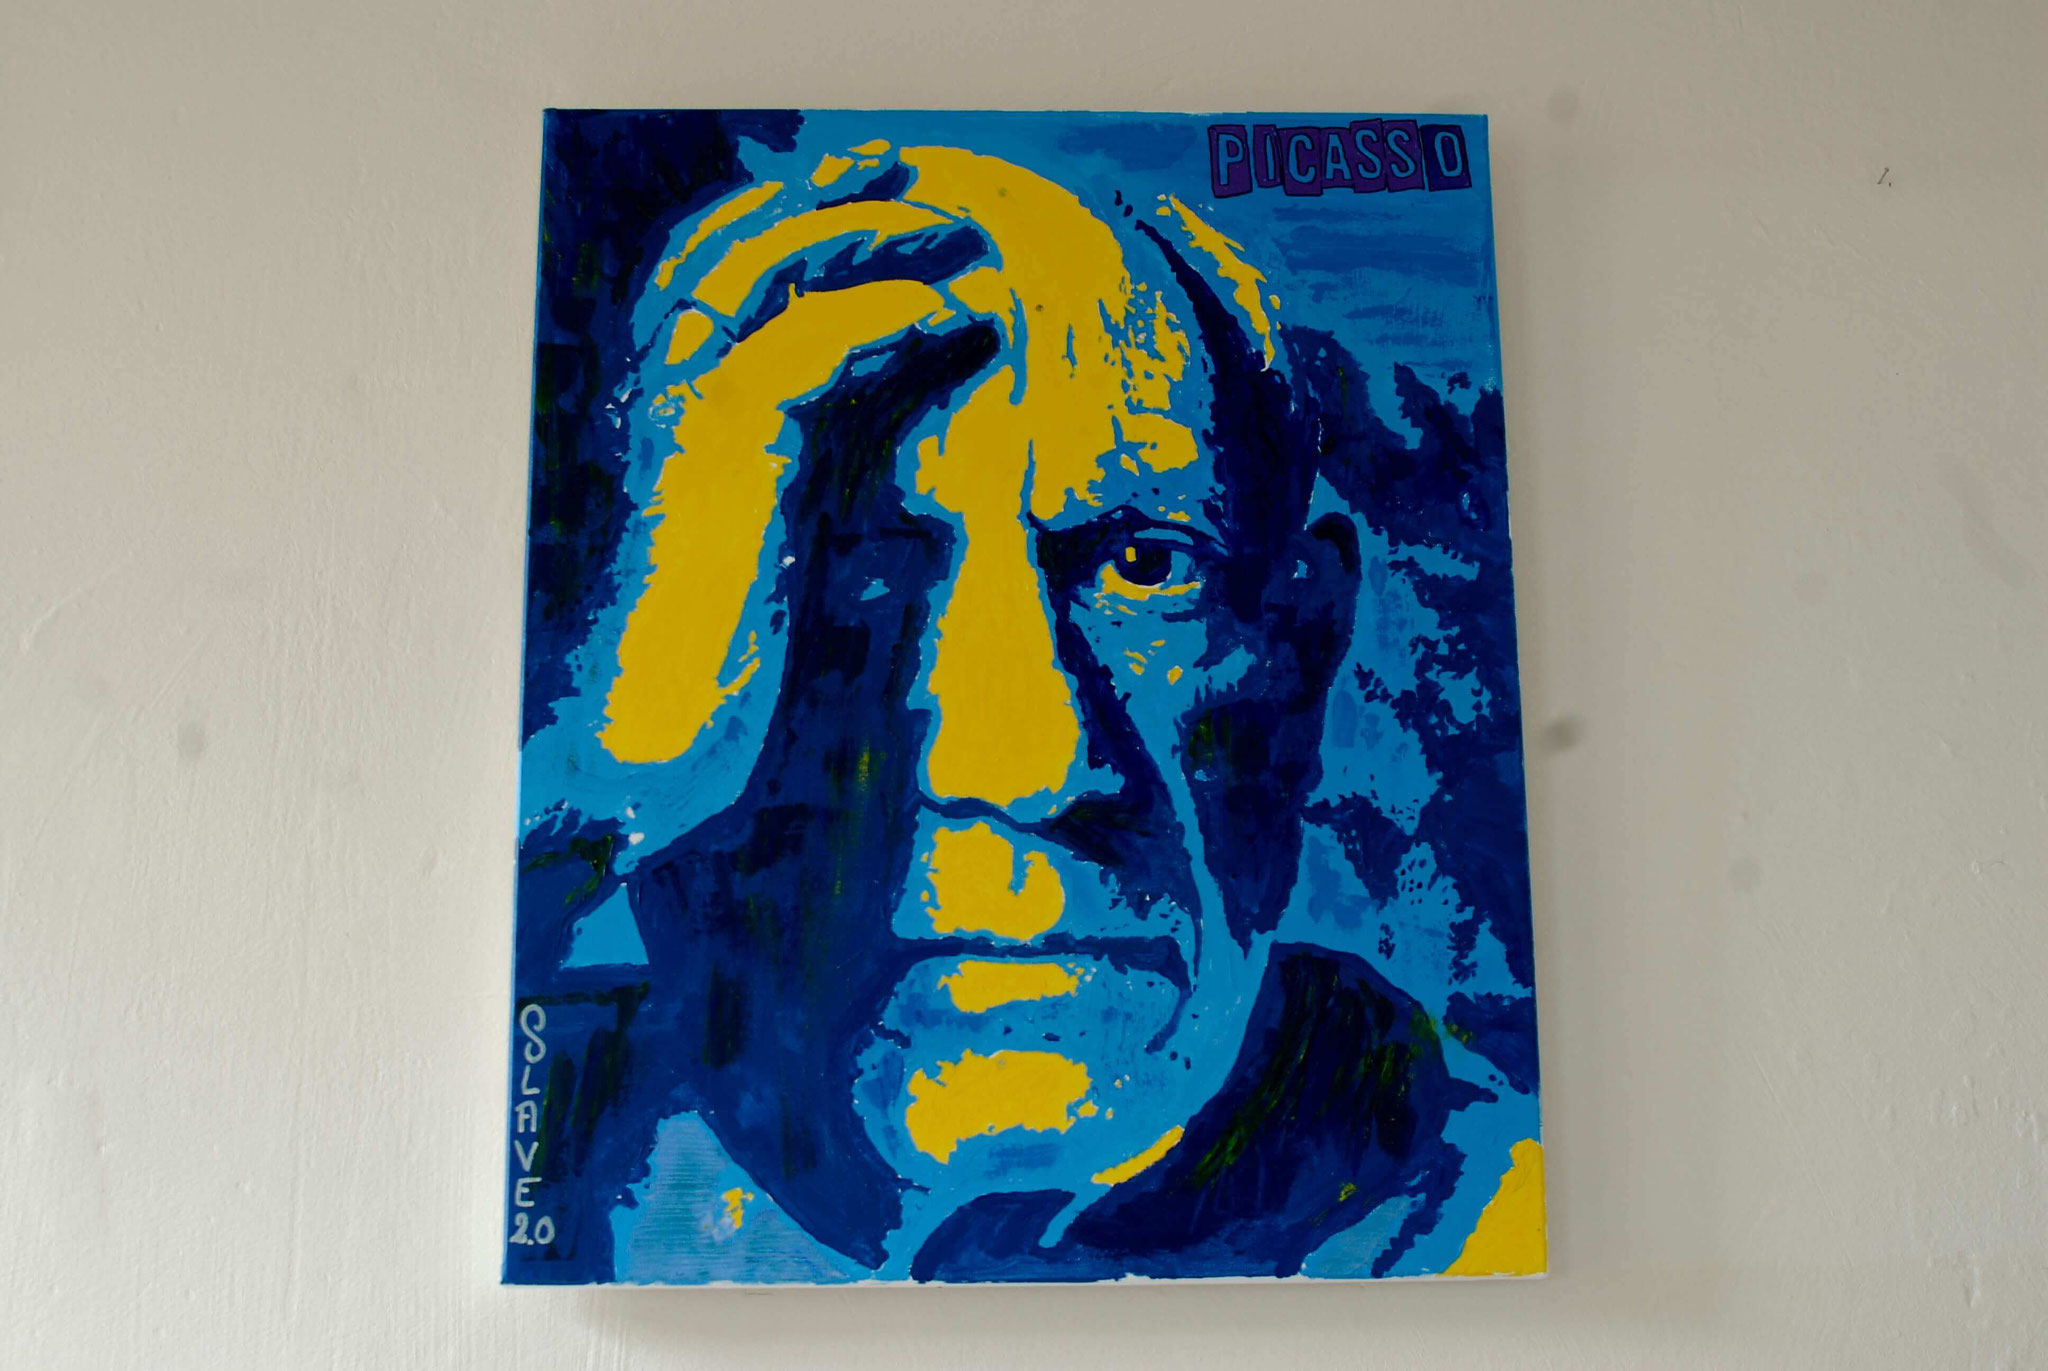 tableau-pablo-picasso-street-art-d-apres-photo.jpg